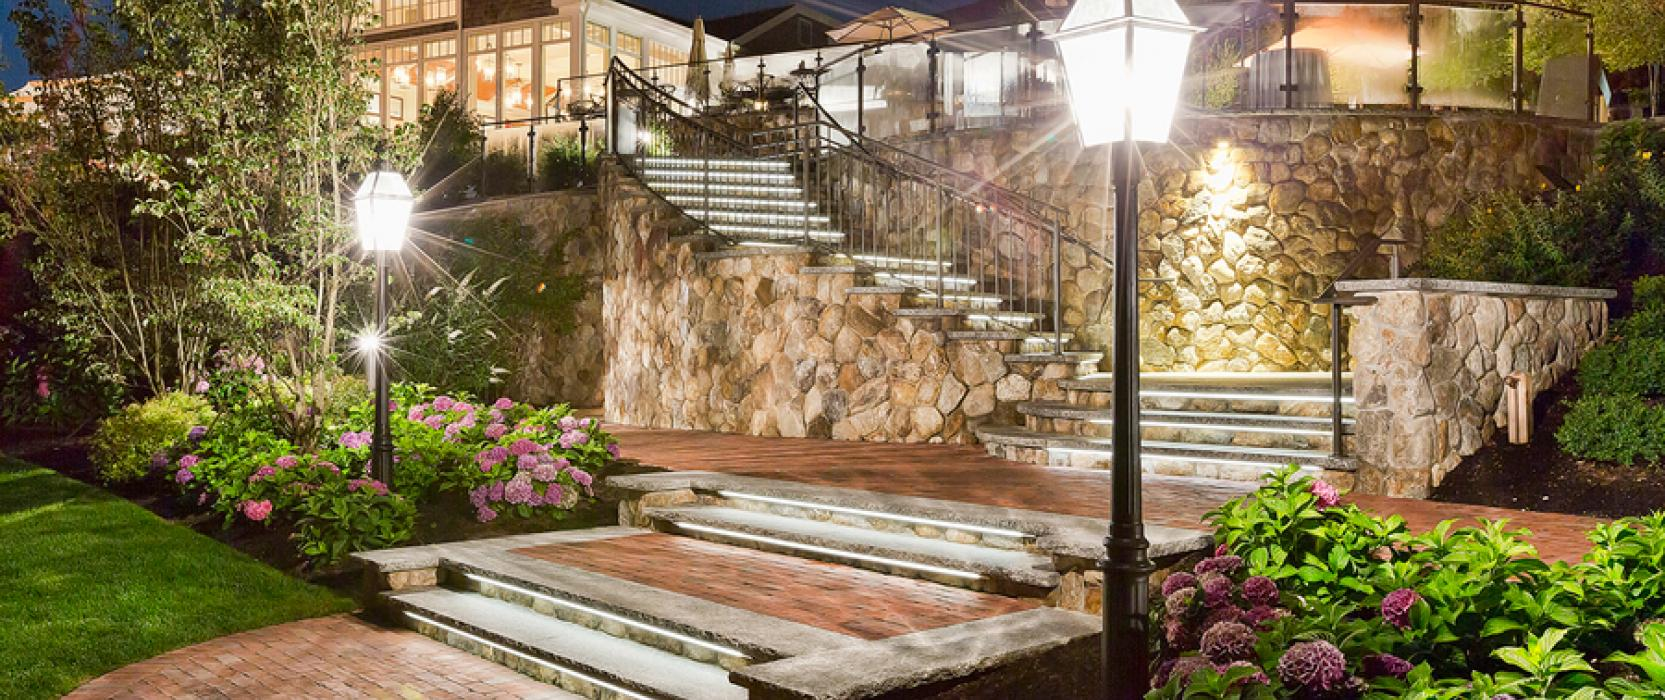 The Do's and Don'ts of Landscape Lighting